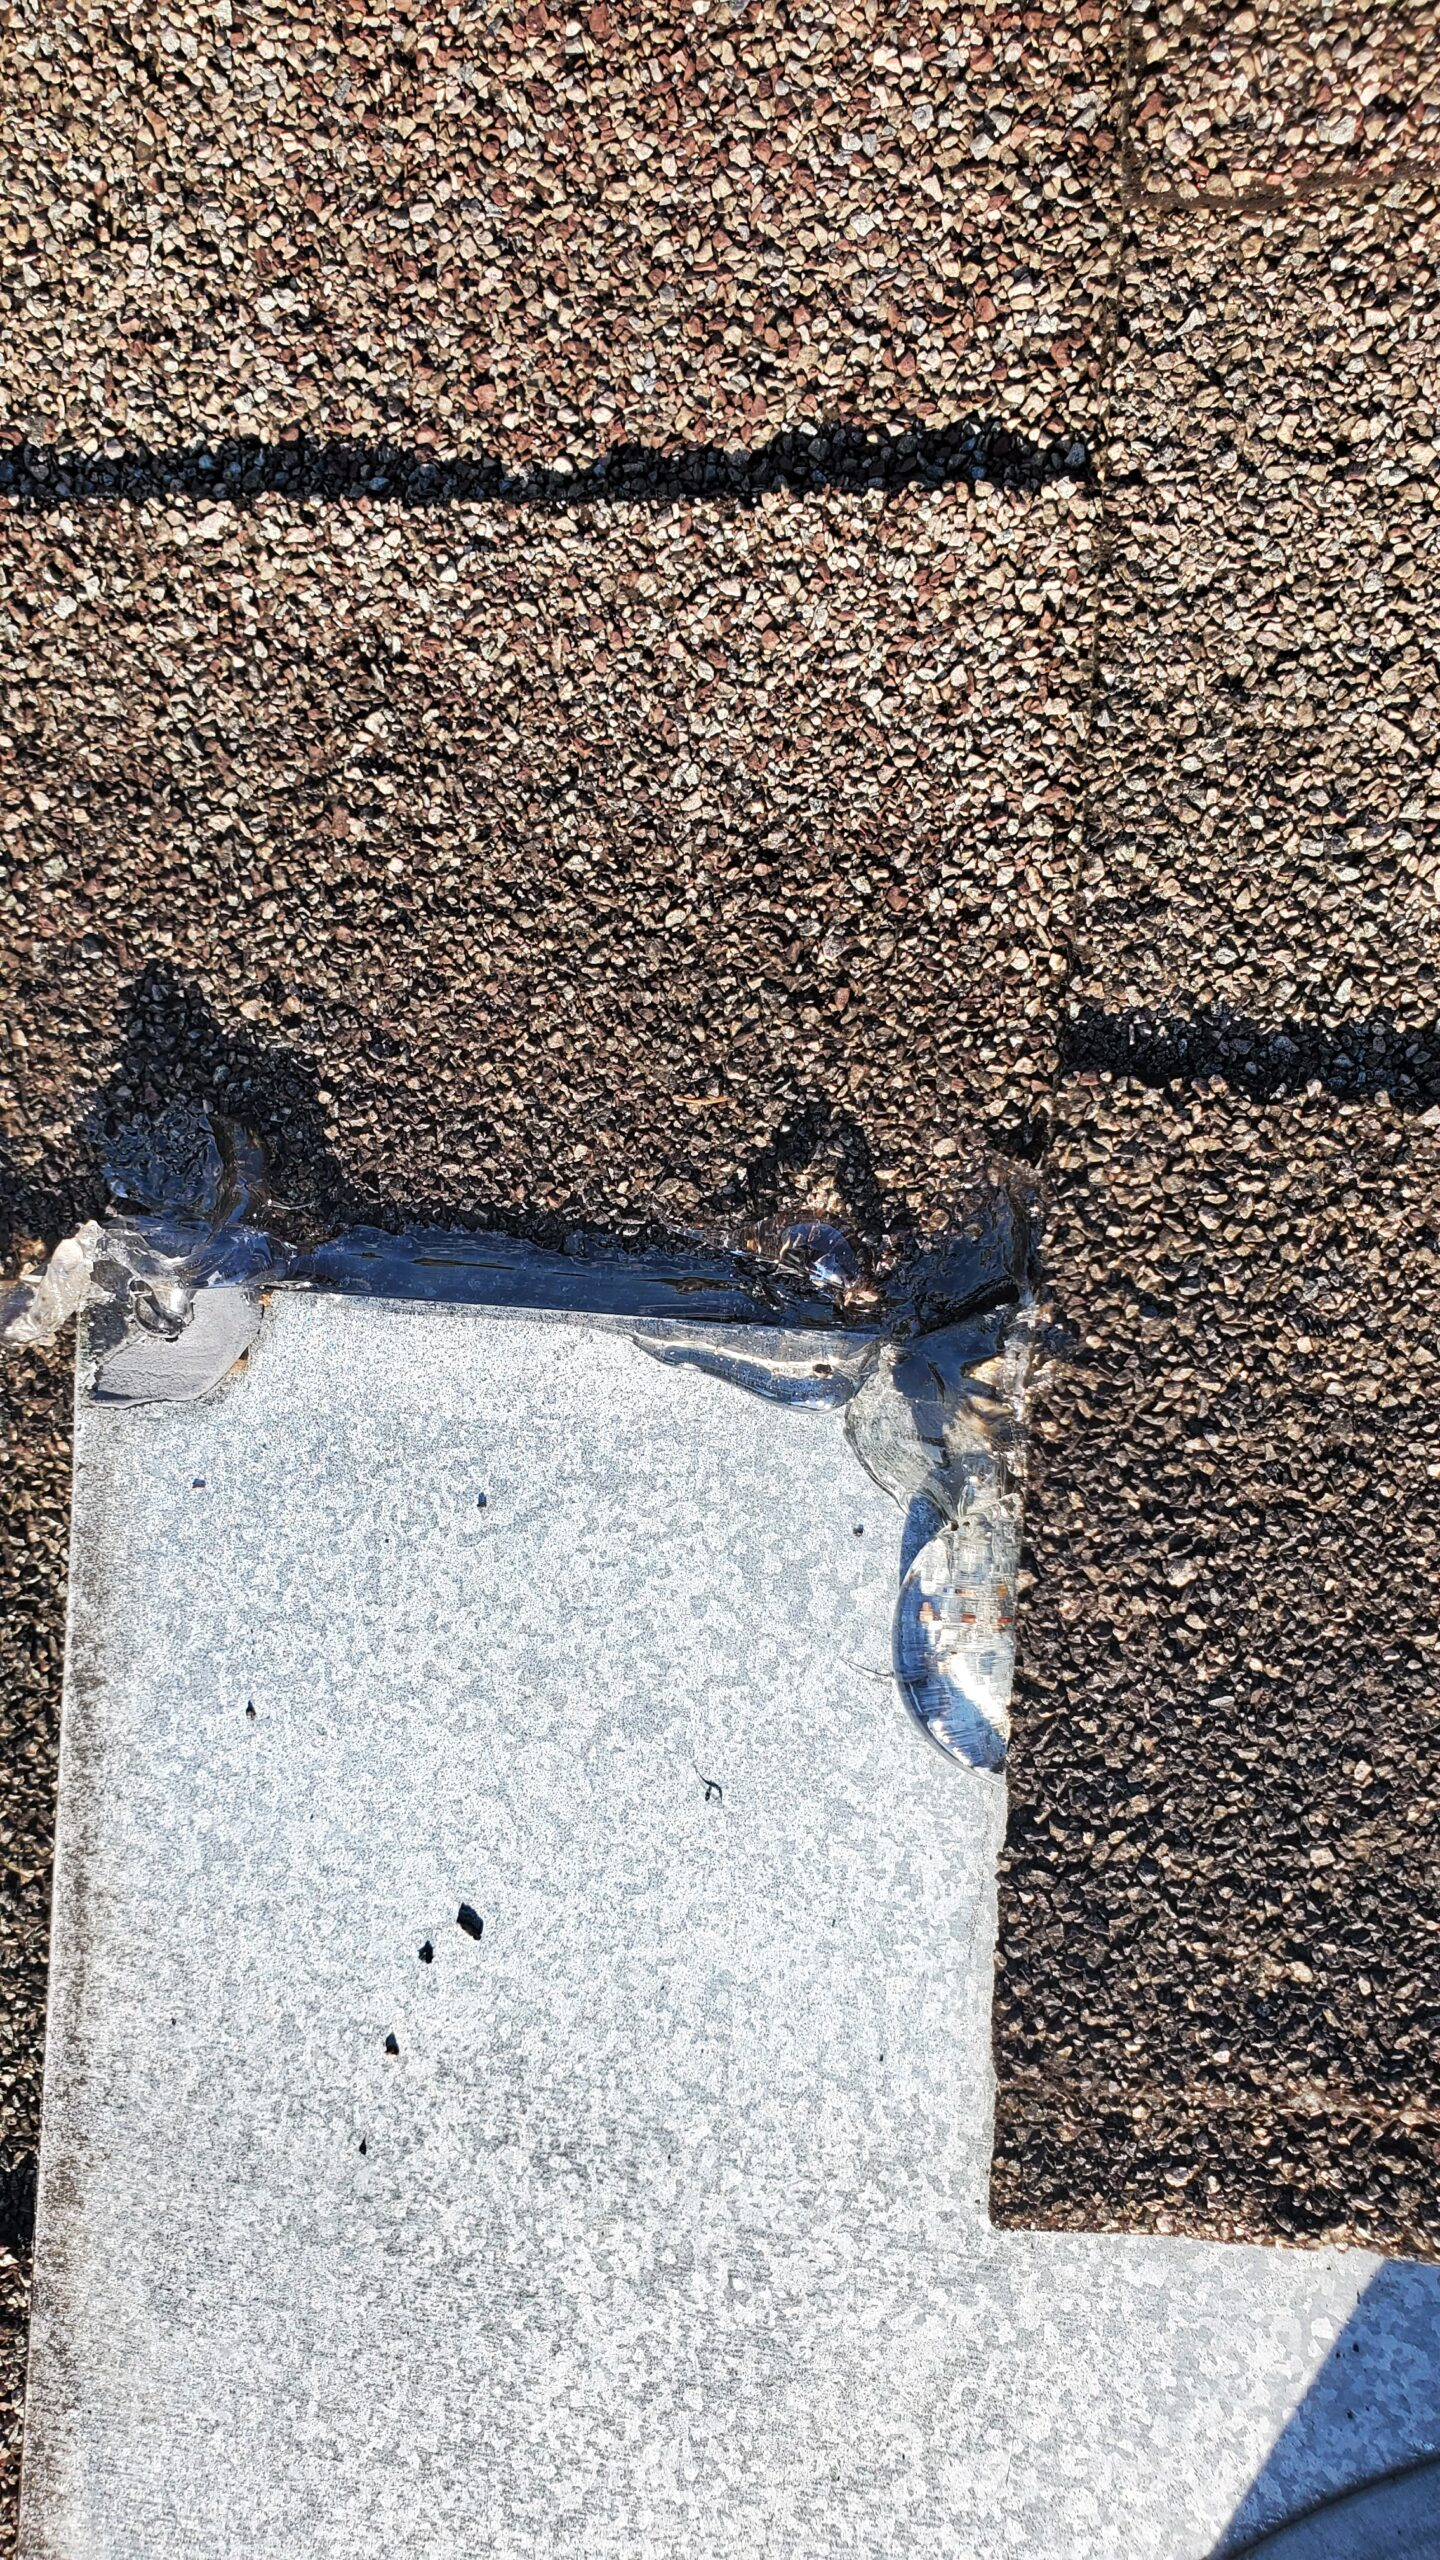 This is a picture of exhaust vent coming out of a roof. This vent has clear caulk along the edges.